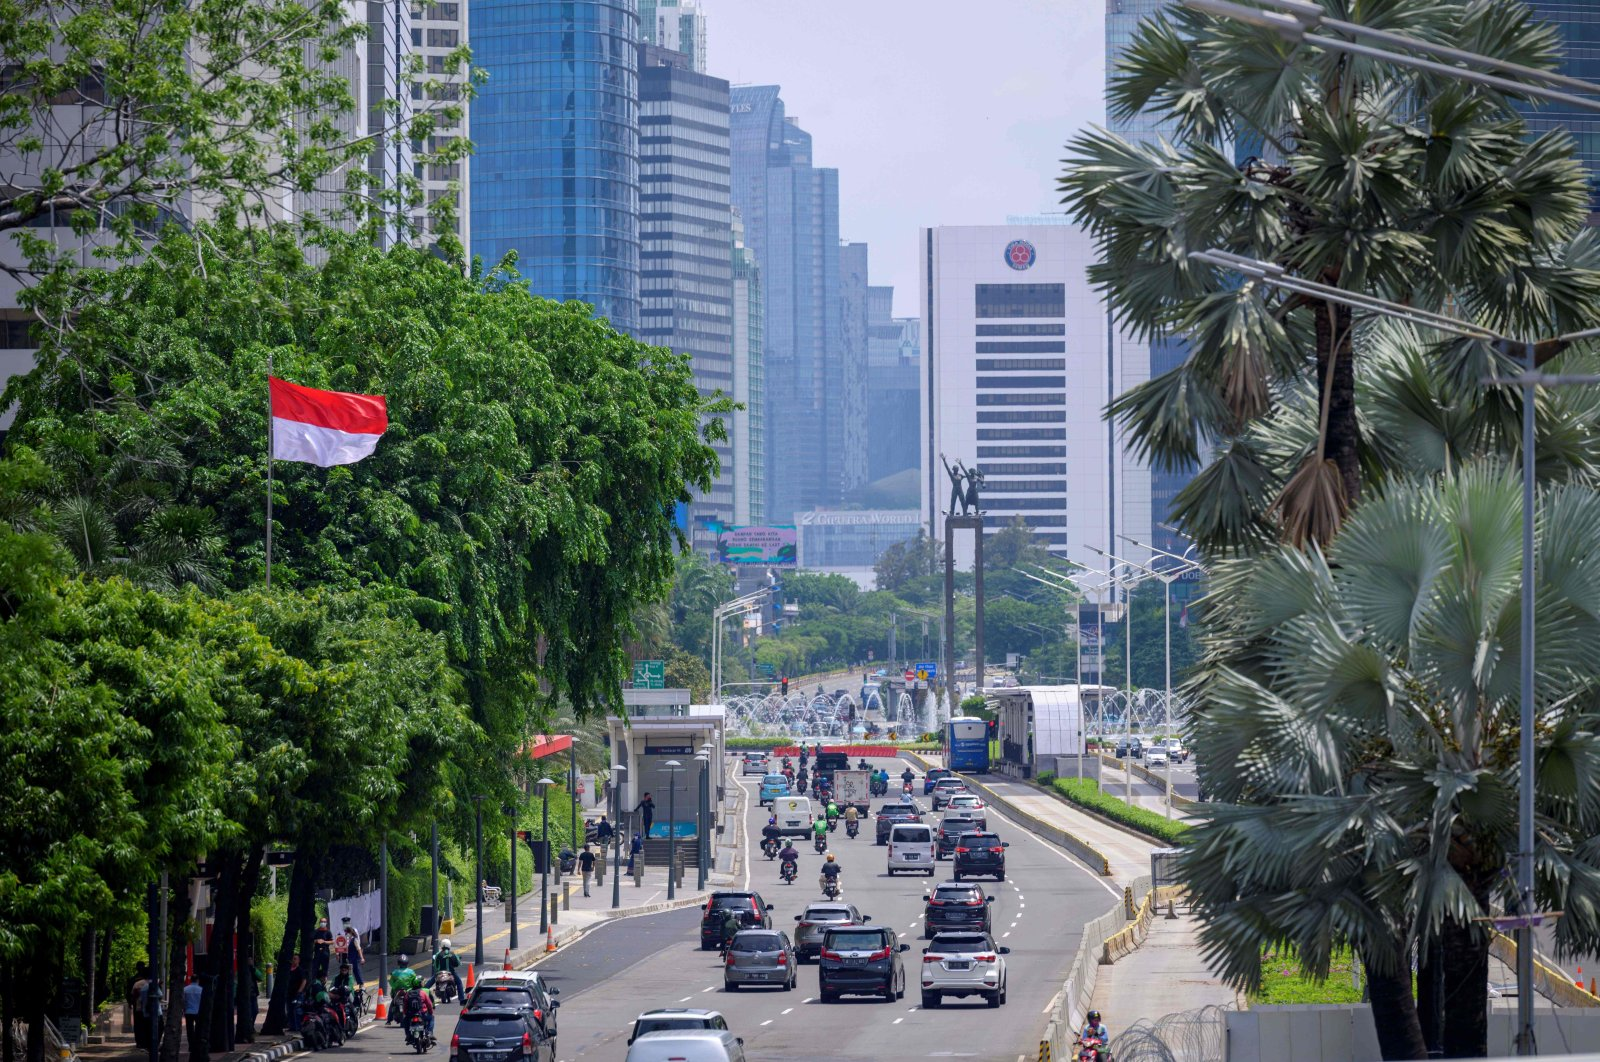 Vehicles seen during a light traffic along a main road after months of the government's policy implementing work from home, Jakarta, Indonesia, Oct. 30, 2020. (AFP Photo)